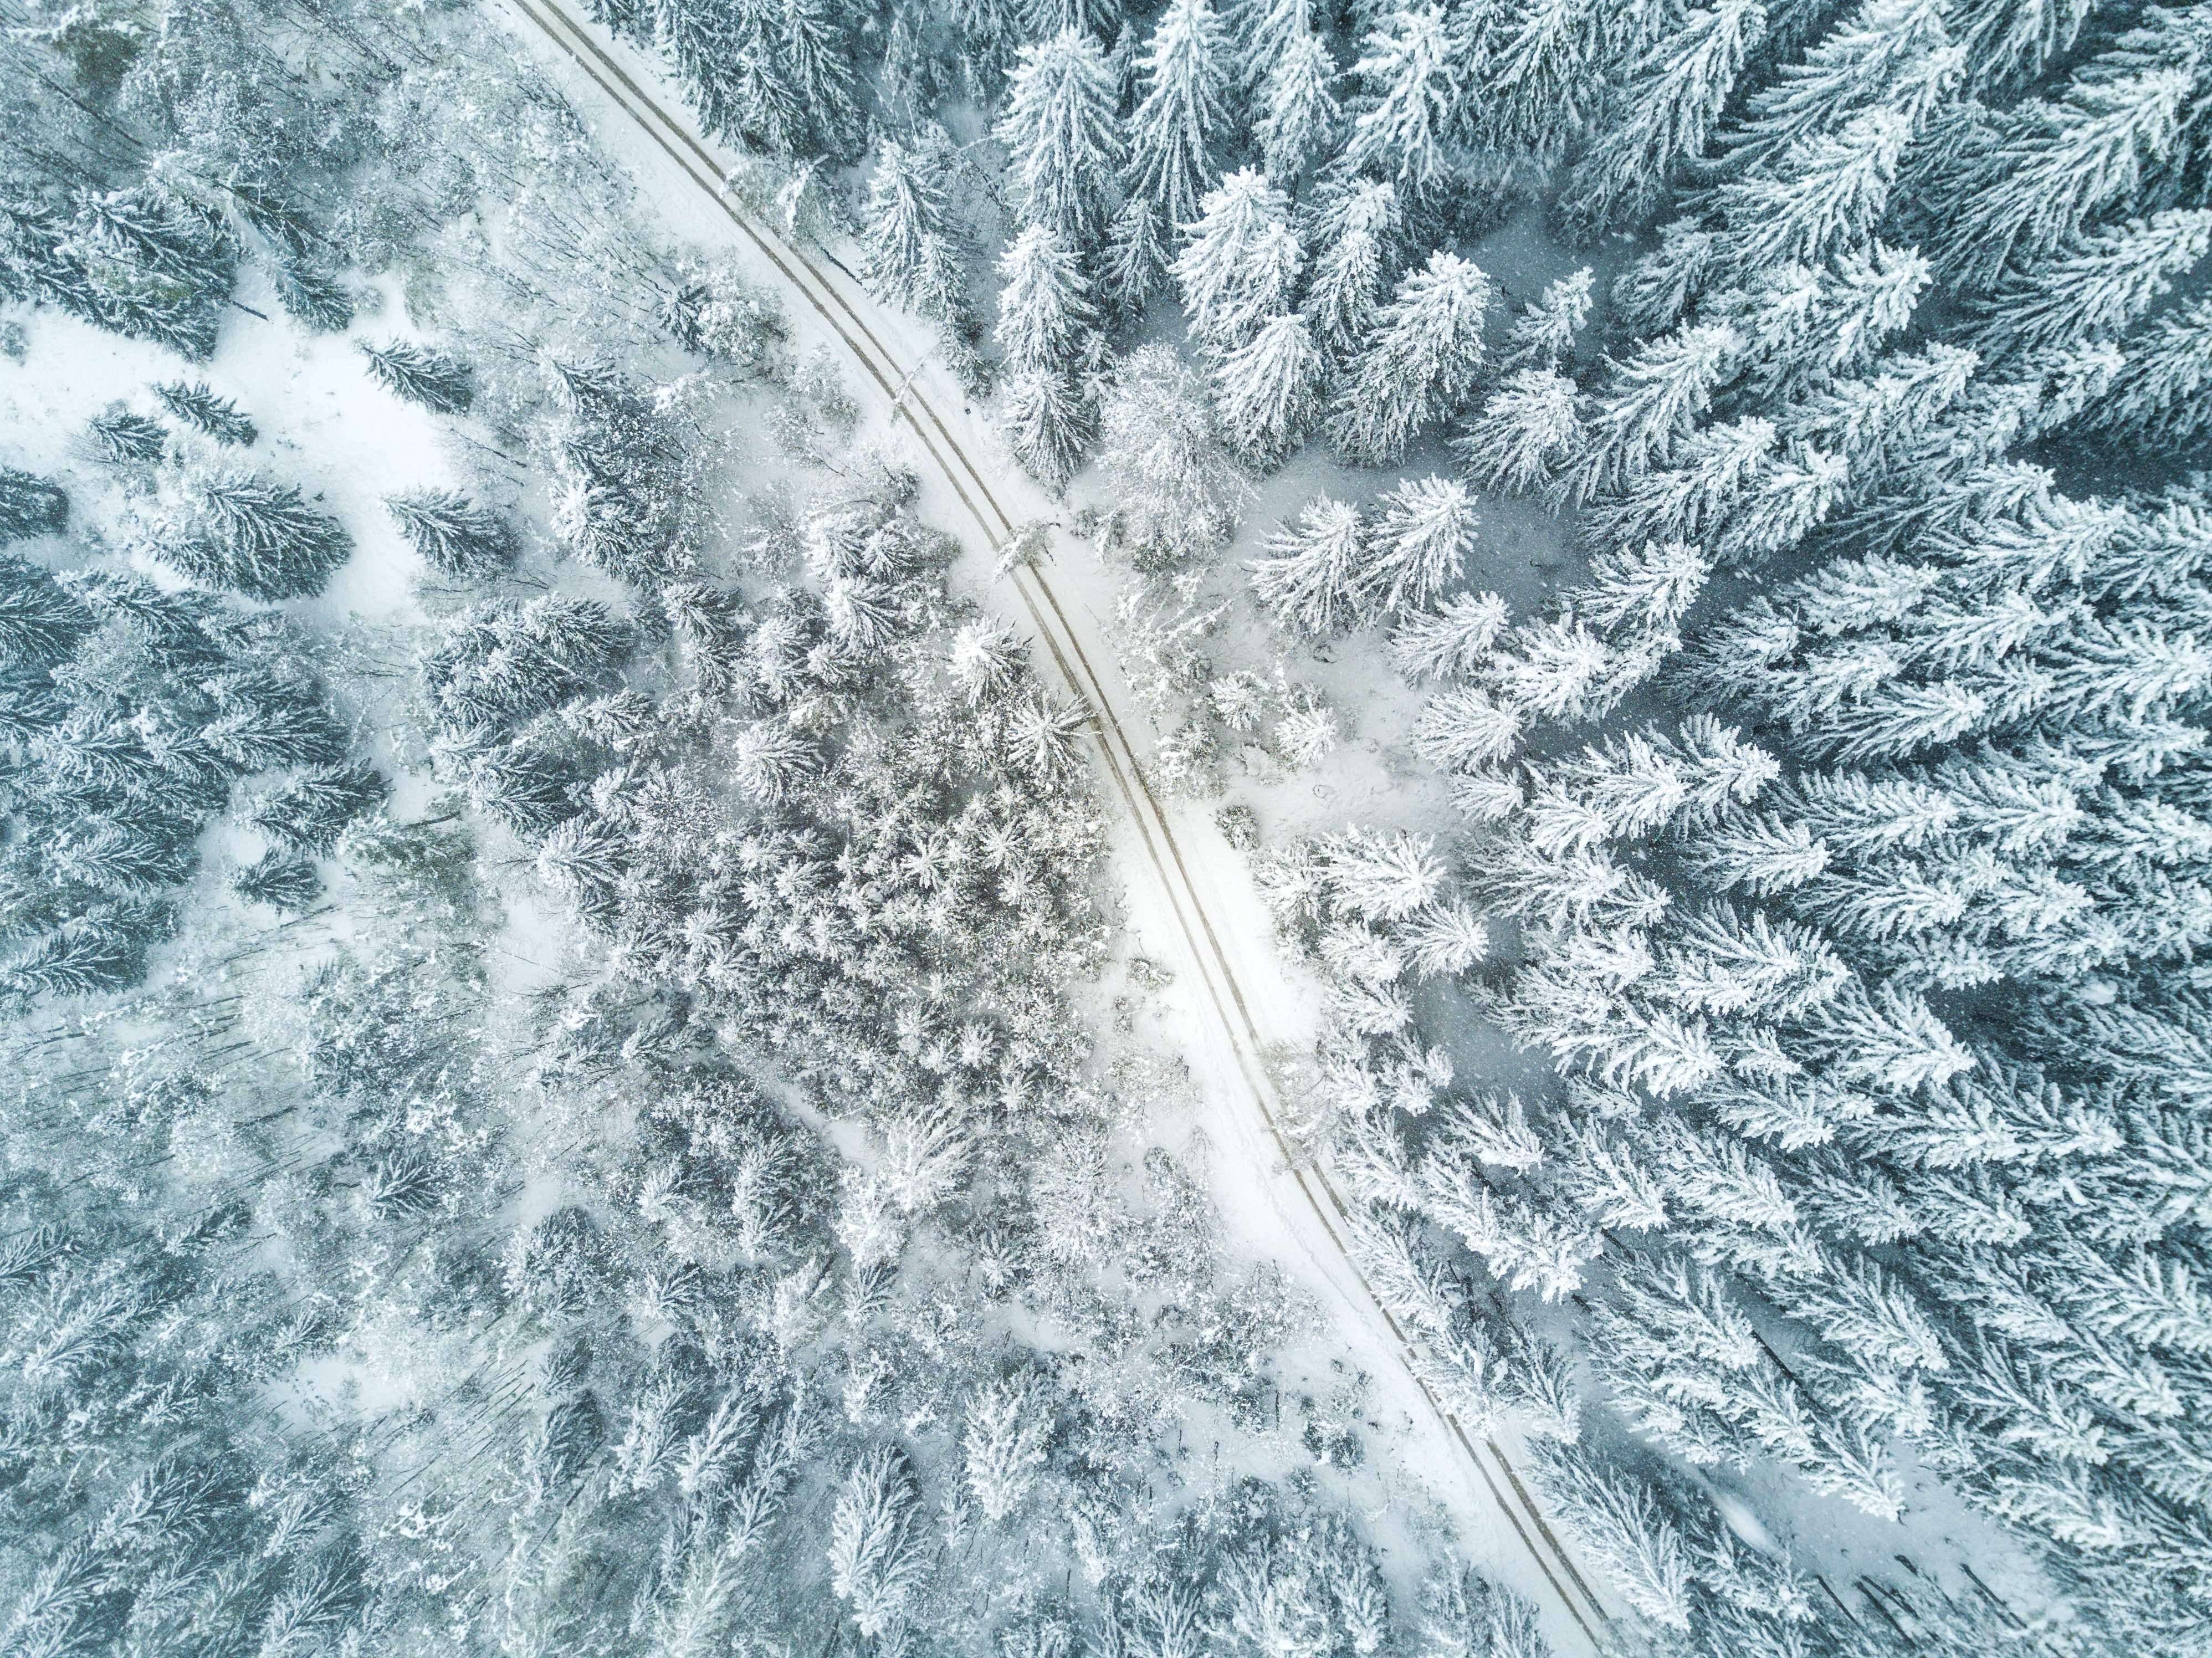 bird's eye view of snow forest